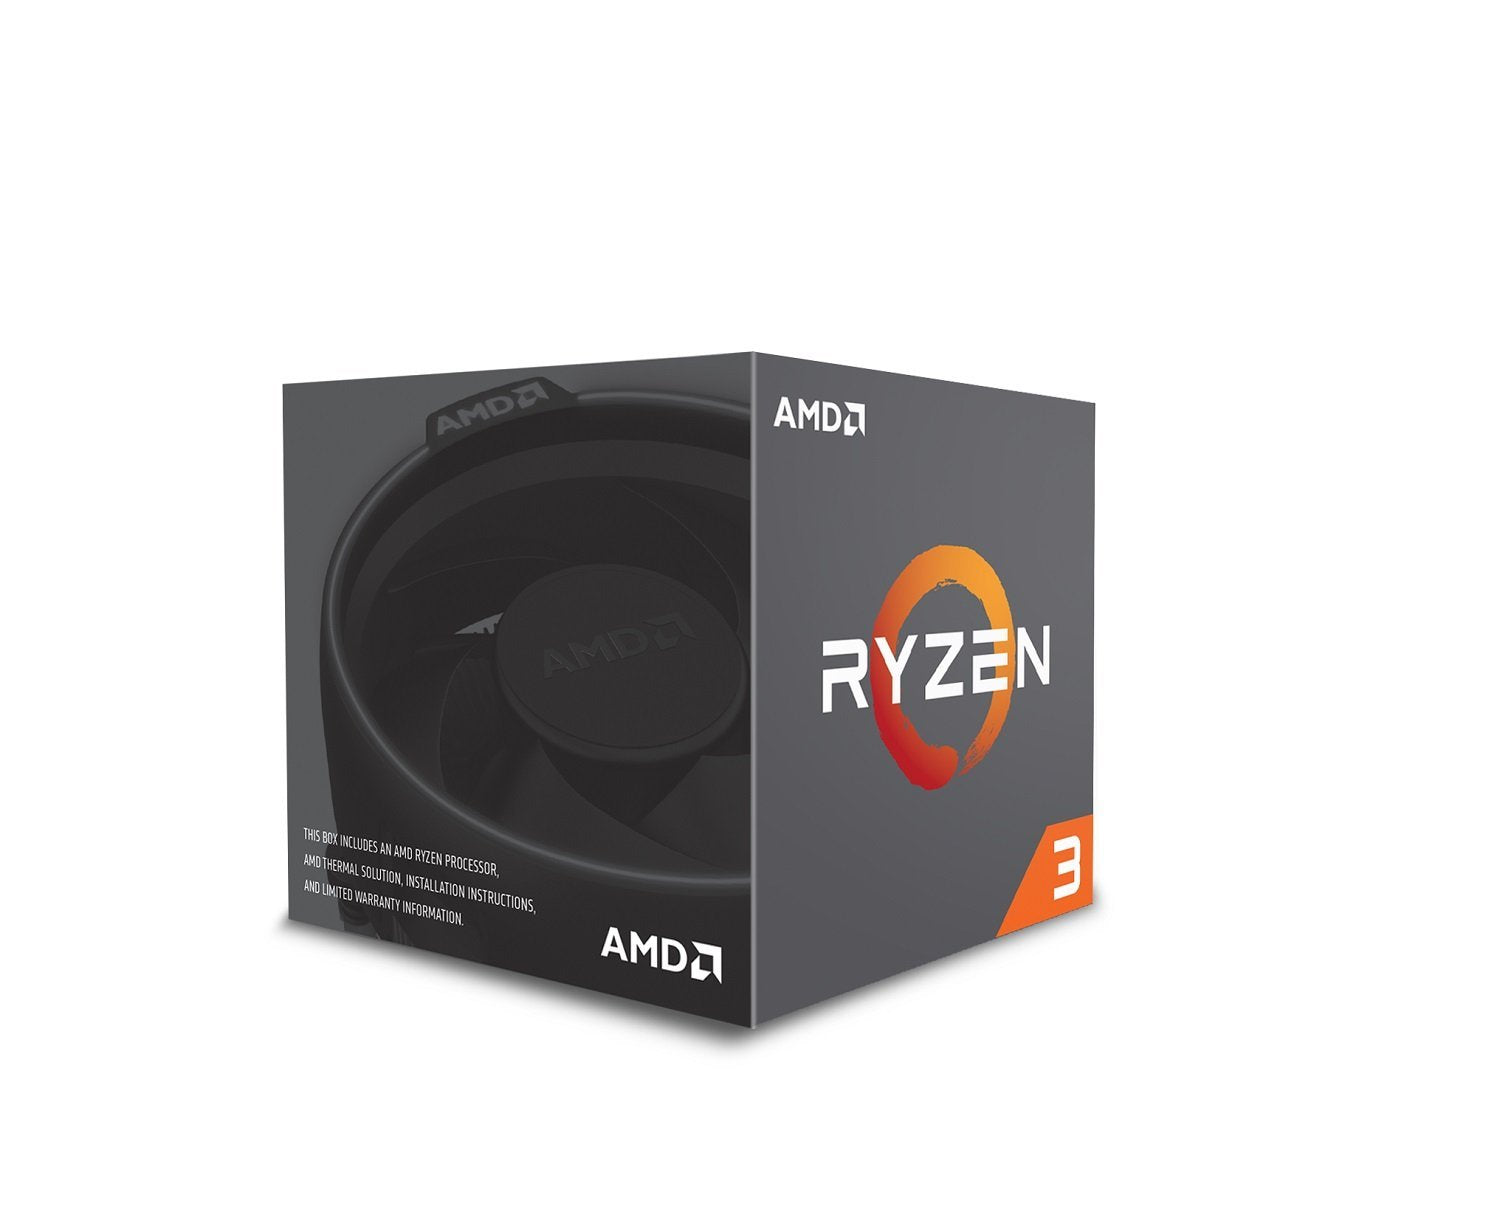 AMD Ryzen 3 1300X Desktop Processor with Wraith Stealth Cooler